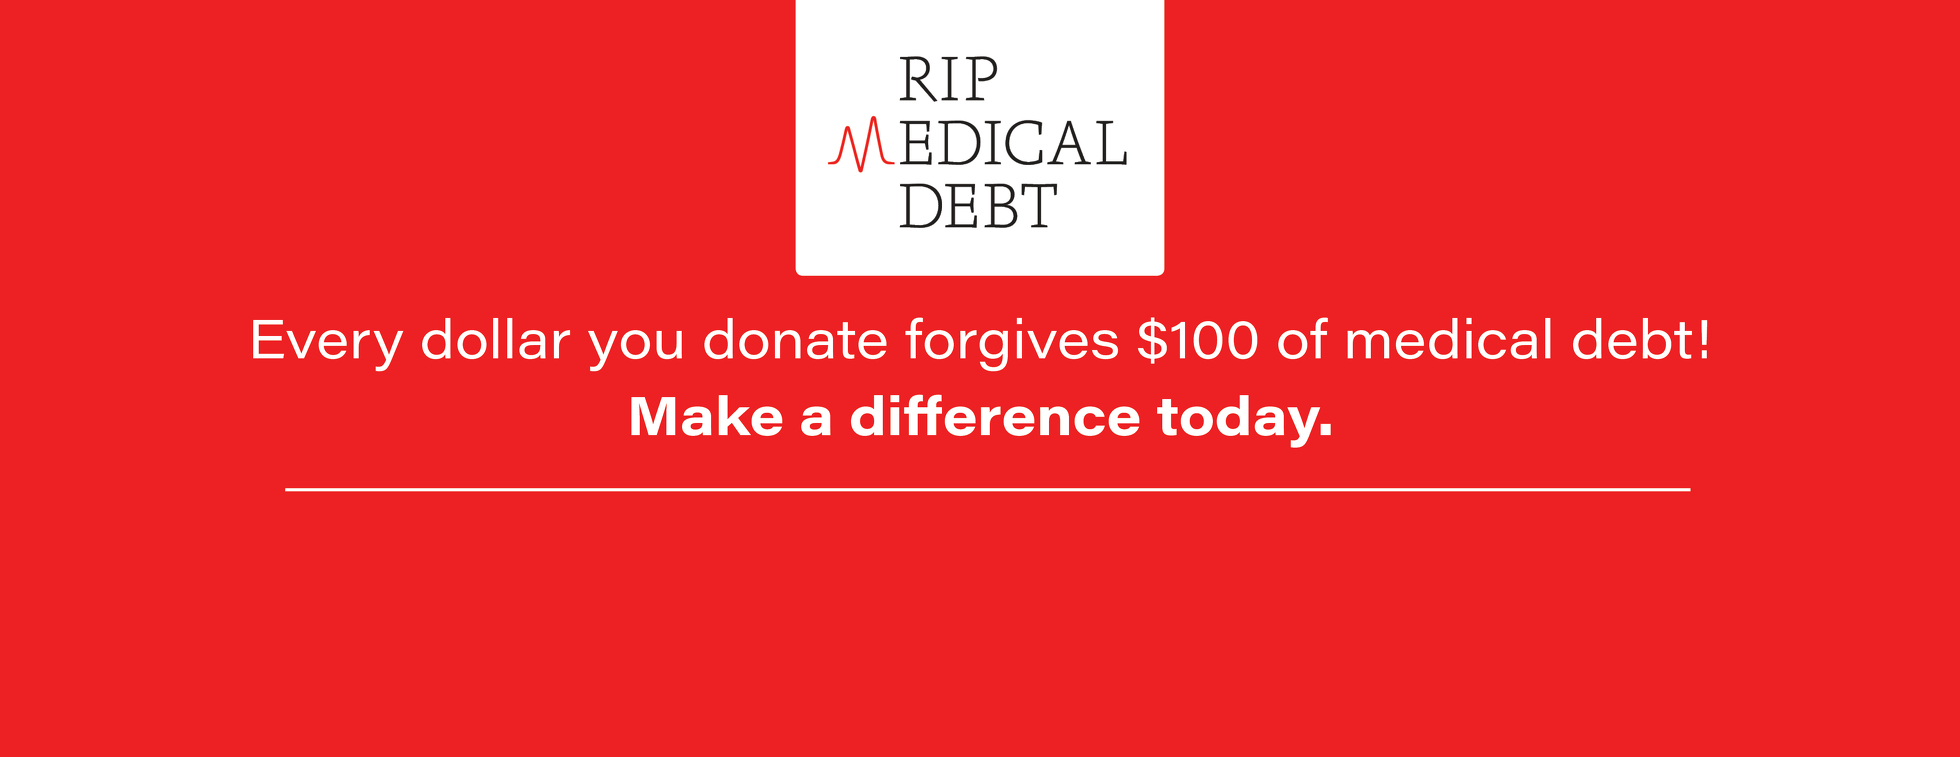 Okeene United Methodist Church's Campaign to Forgive $4.5M of Medical Debt in OK